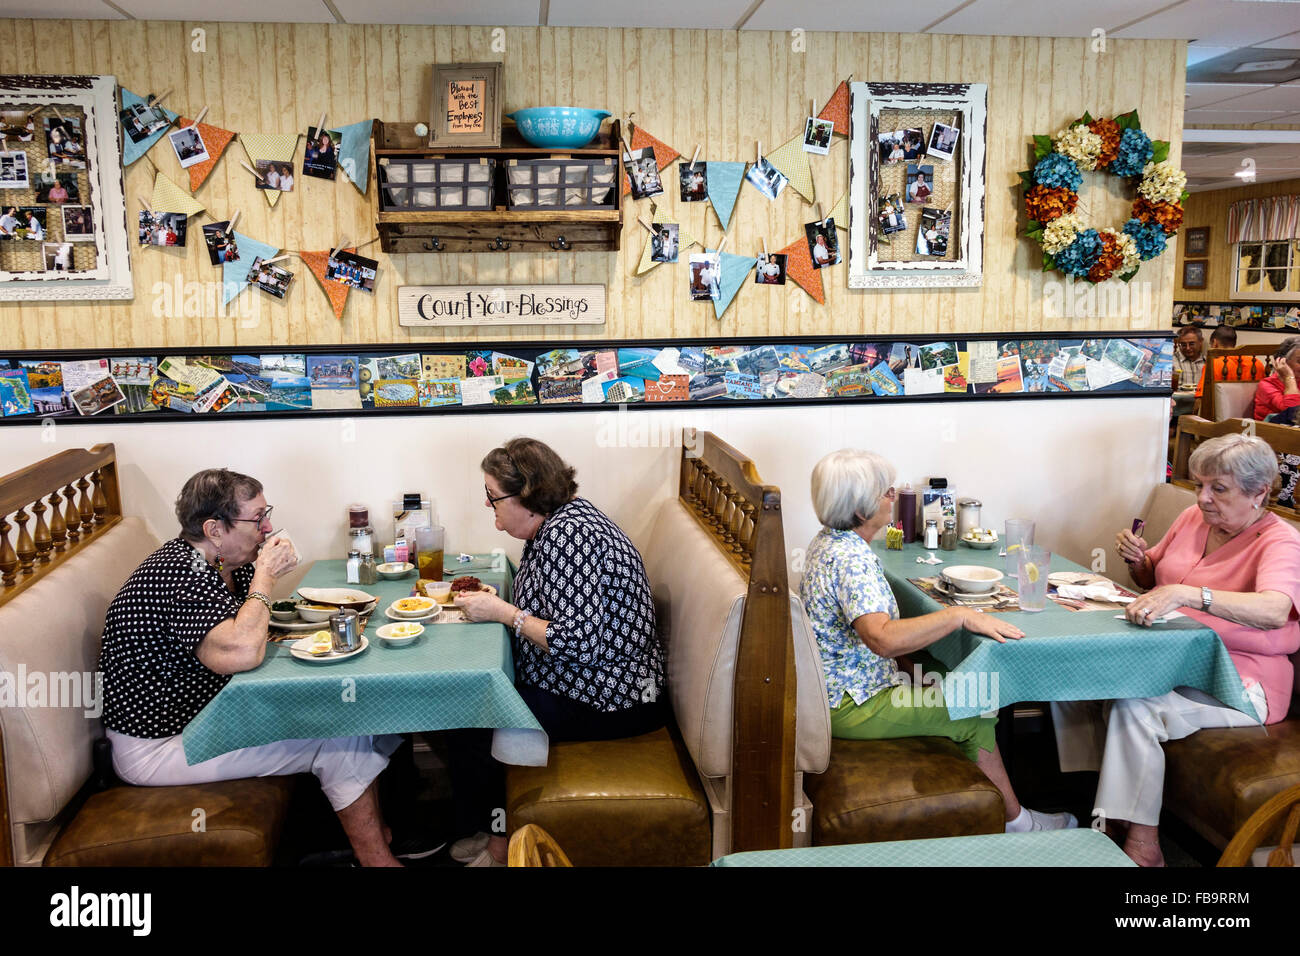 Sarasota Florida Pinecraft Amish Community Yoderu0027s Amish Village Restaurant  Restaurant Inside Booths Tables Senior Stock Photo